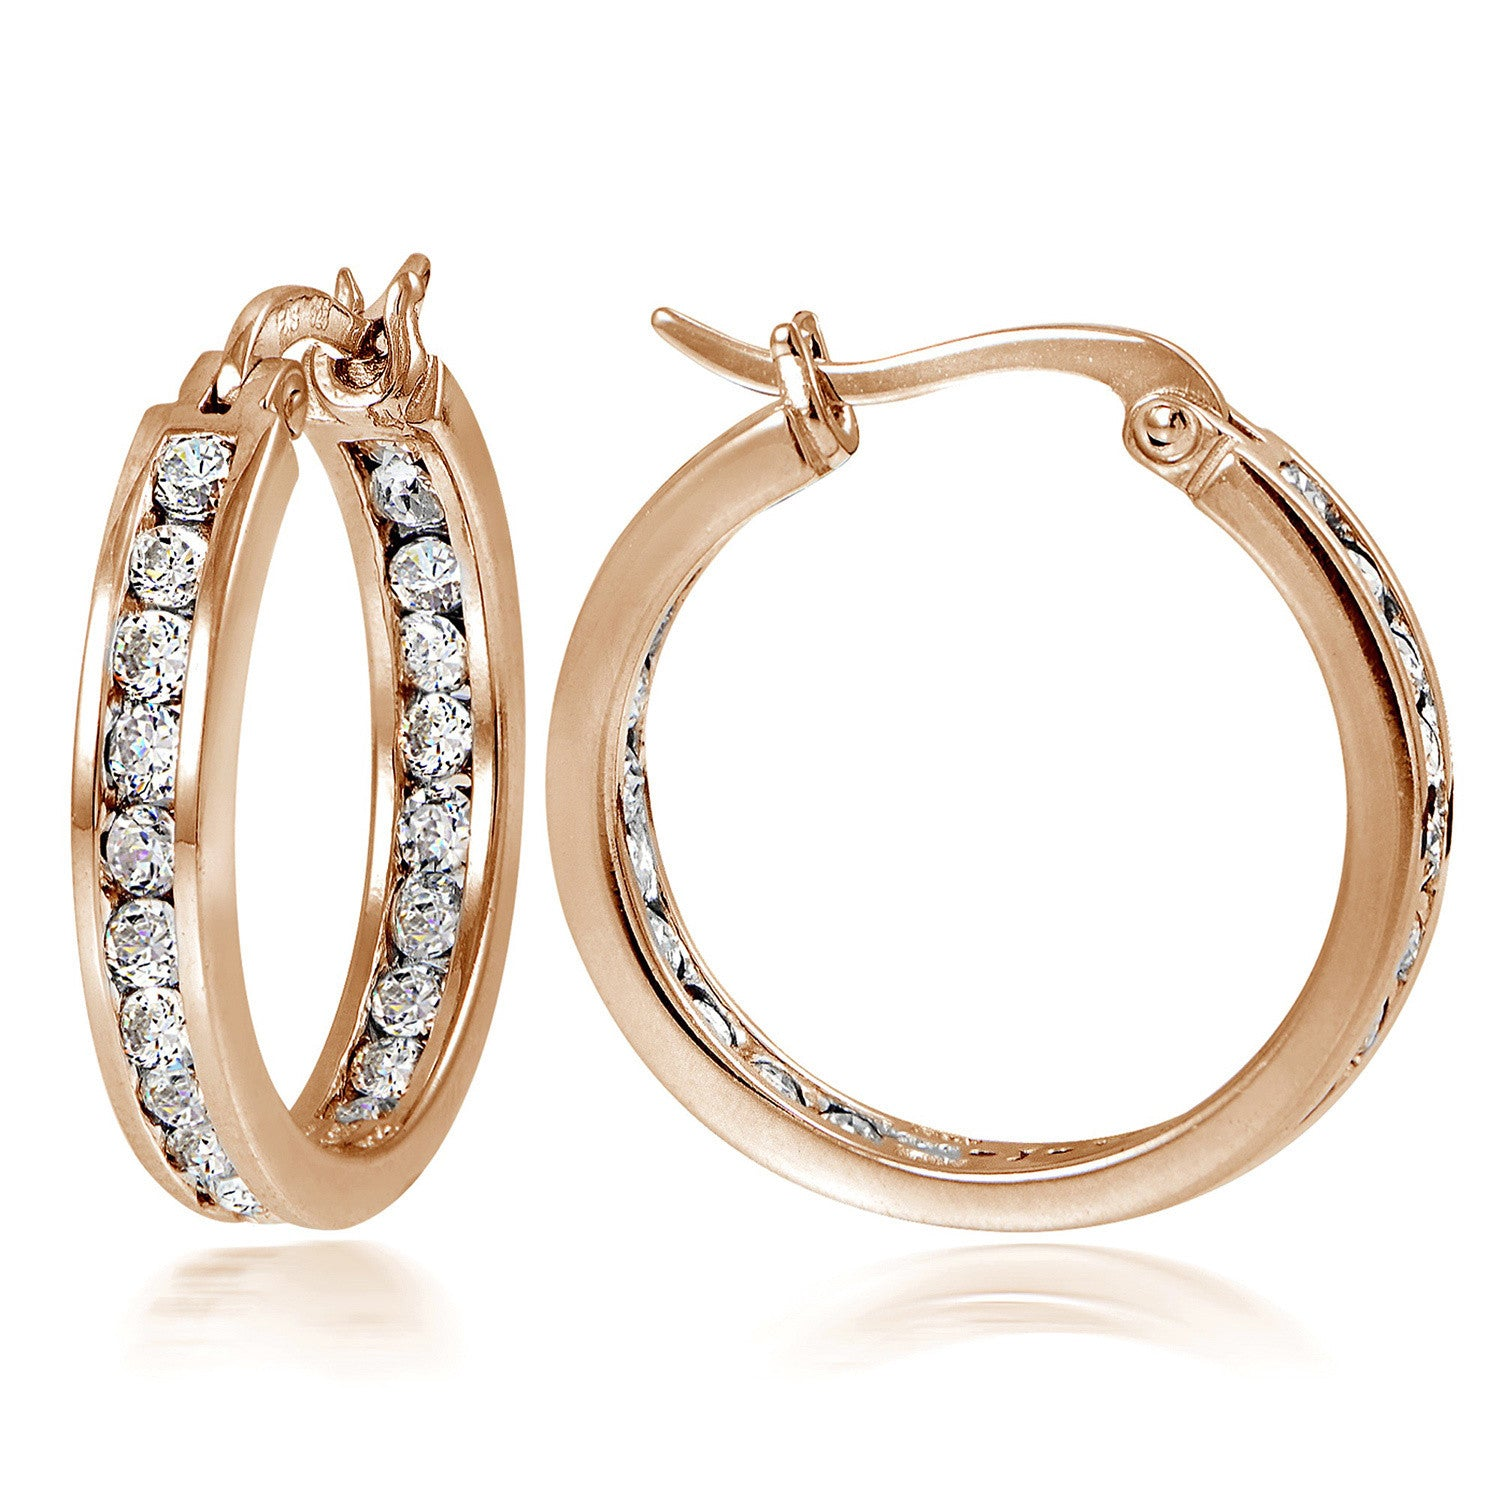 Sterling Silver Cubic Zirconia Accented Saddleback Hoop Earrings - Rose Gold